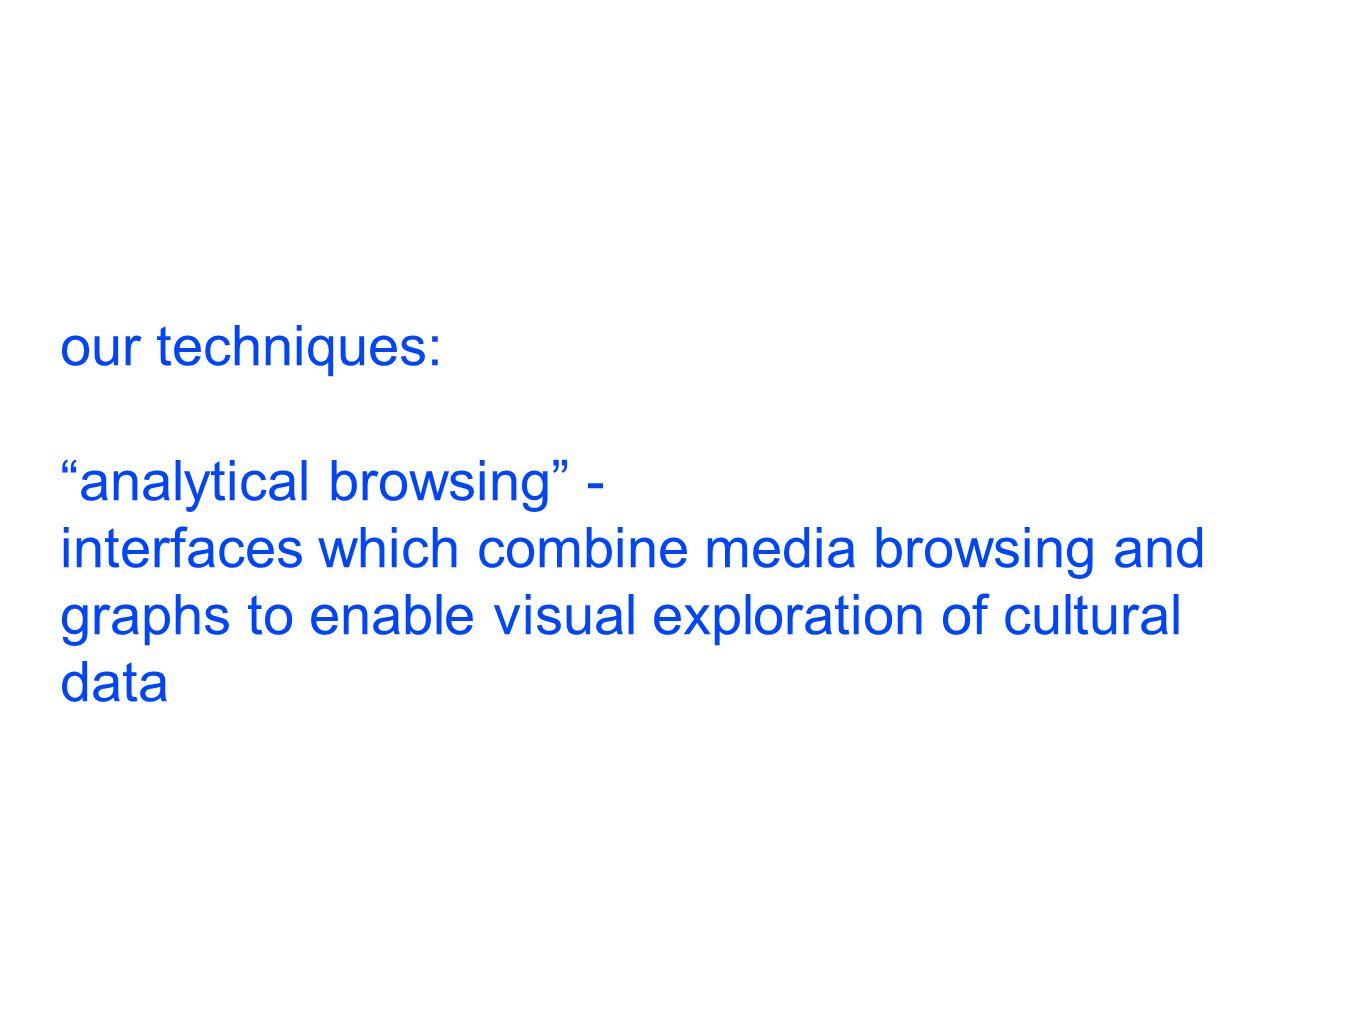 our techniques: analytical browsing - interfaces which combine media browsing and graphs to enable visual exploration of cultural data